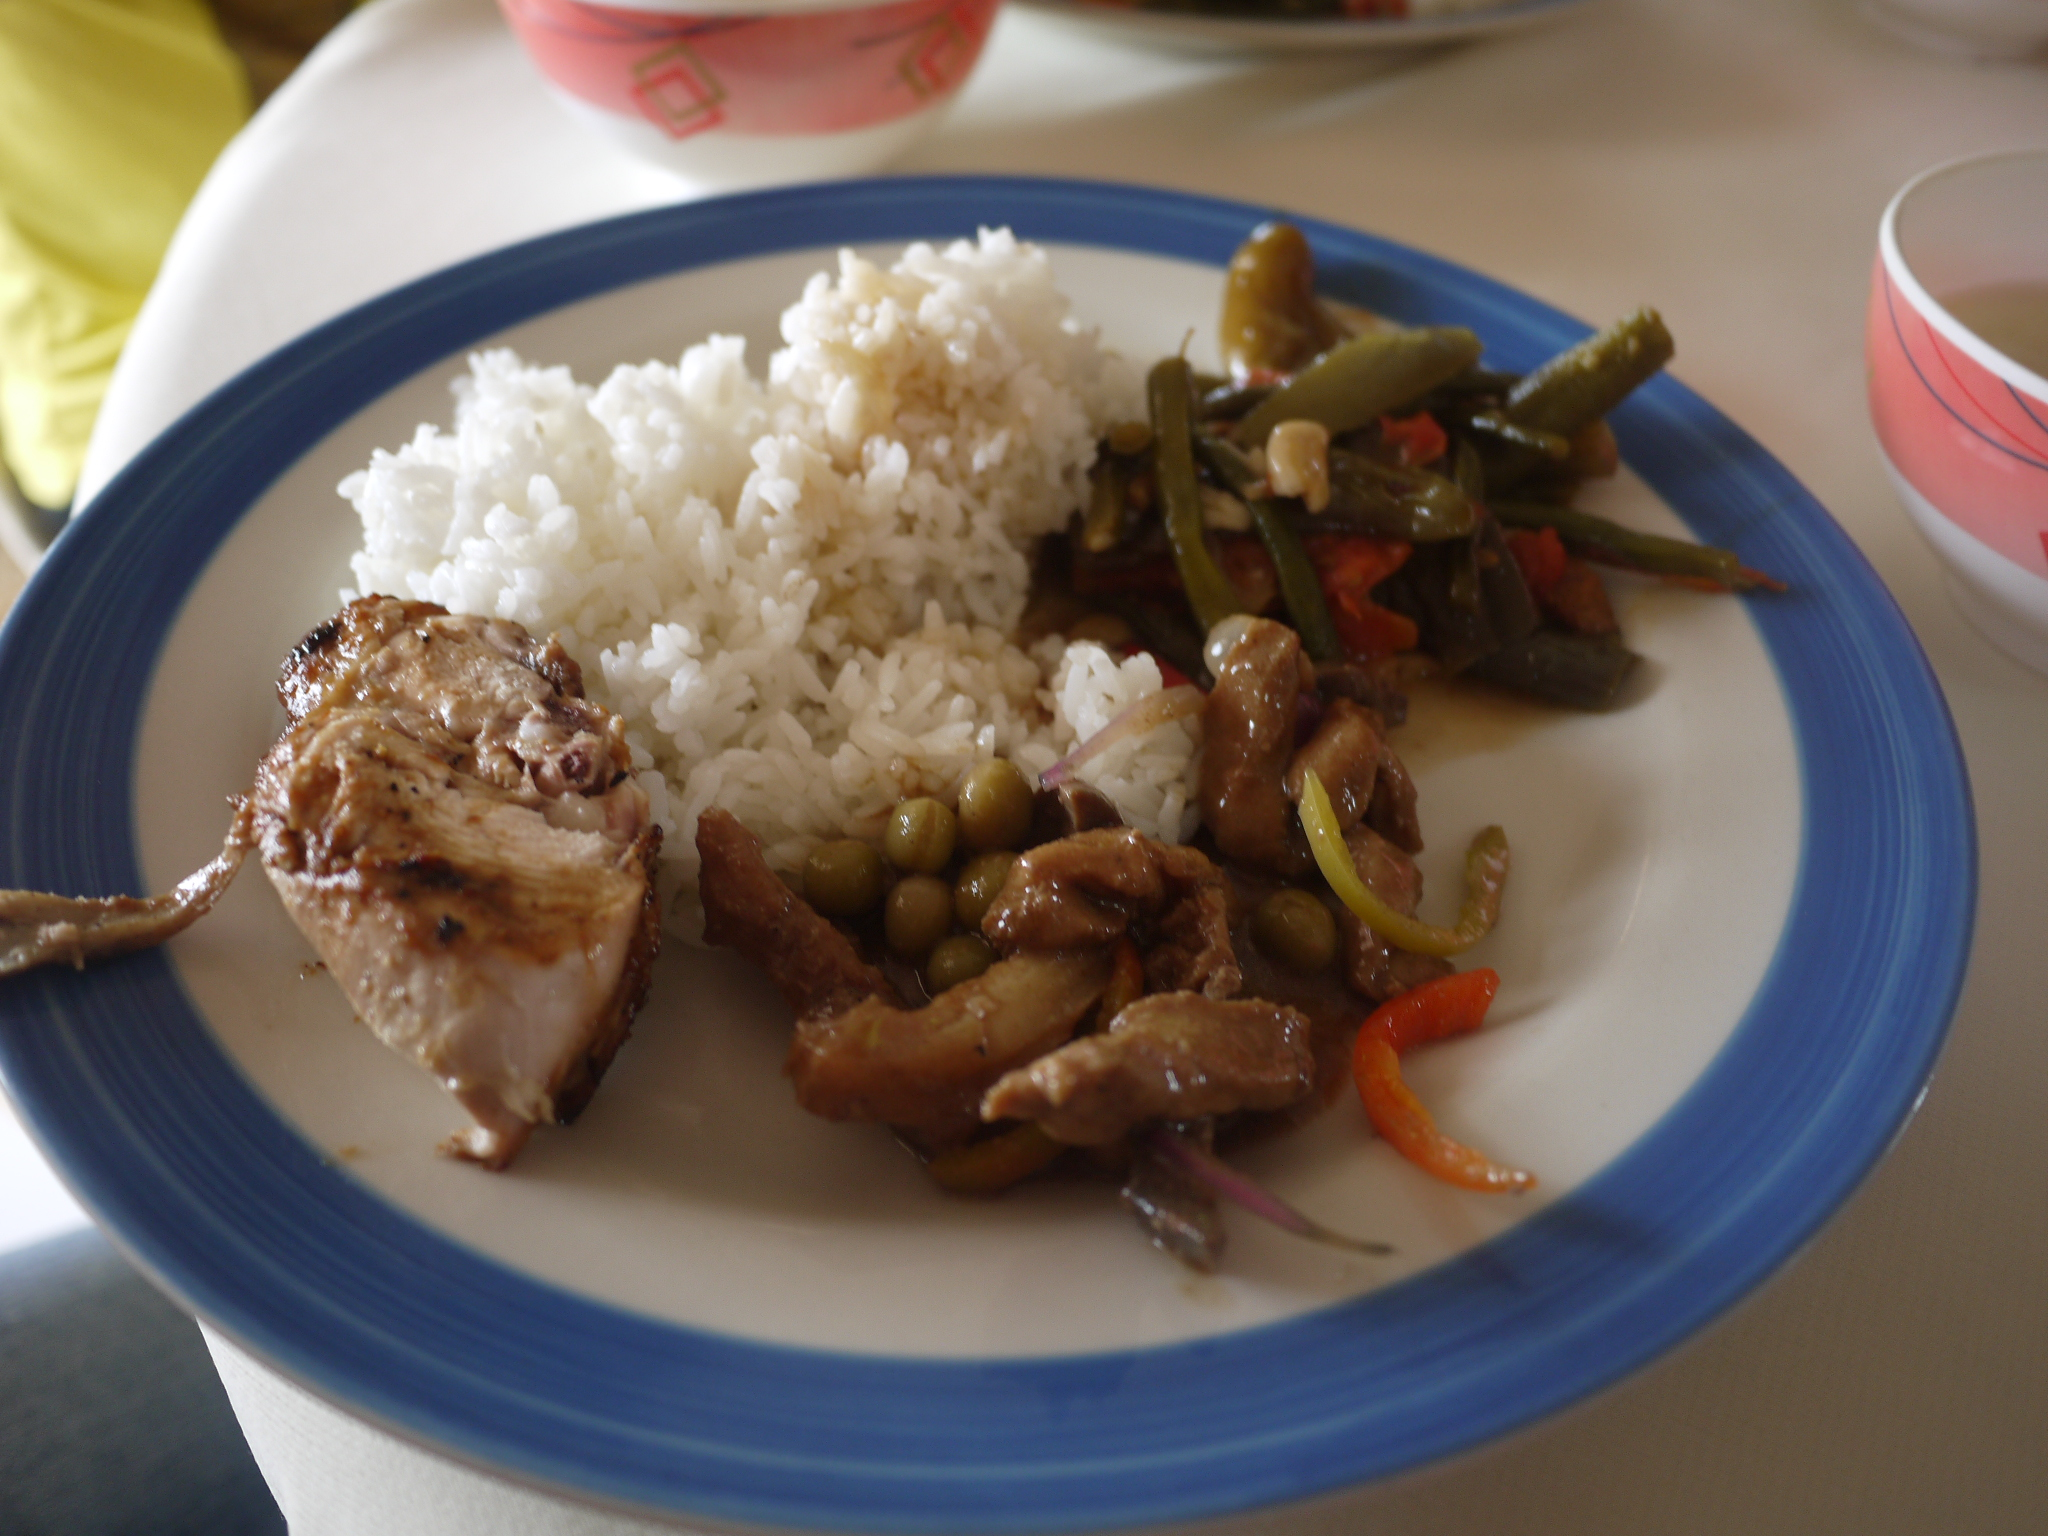 Ilocano food -- Grilled chicken, pinakbet and igado